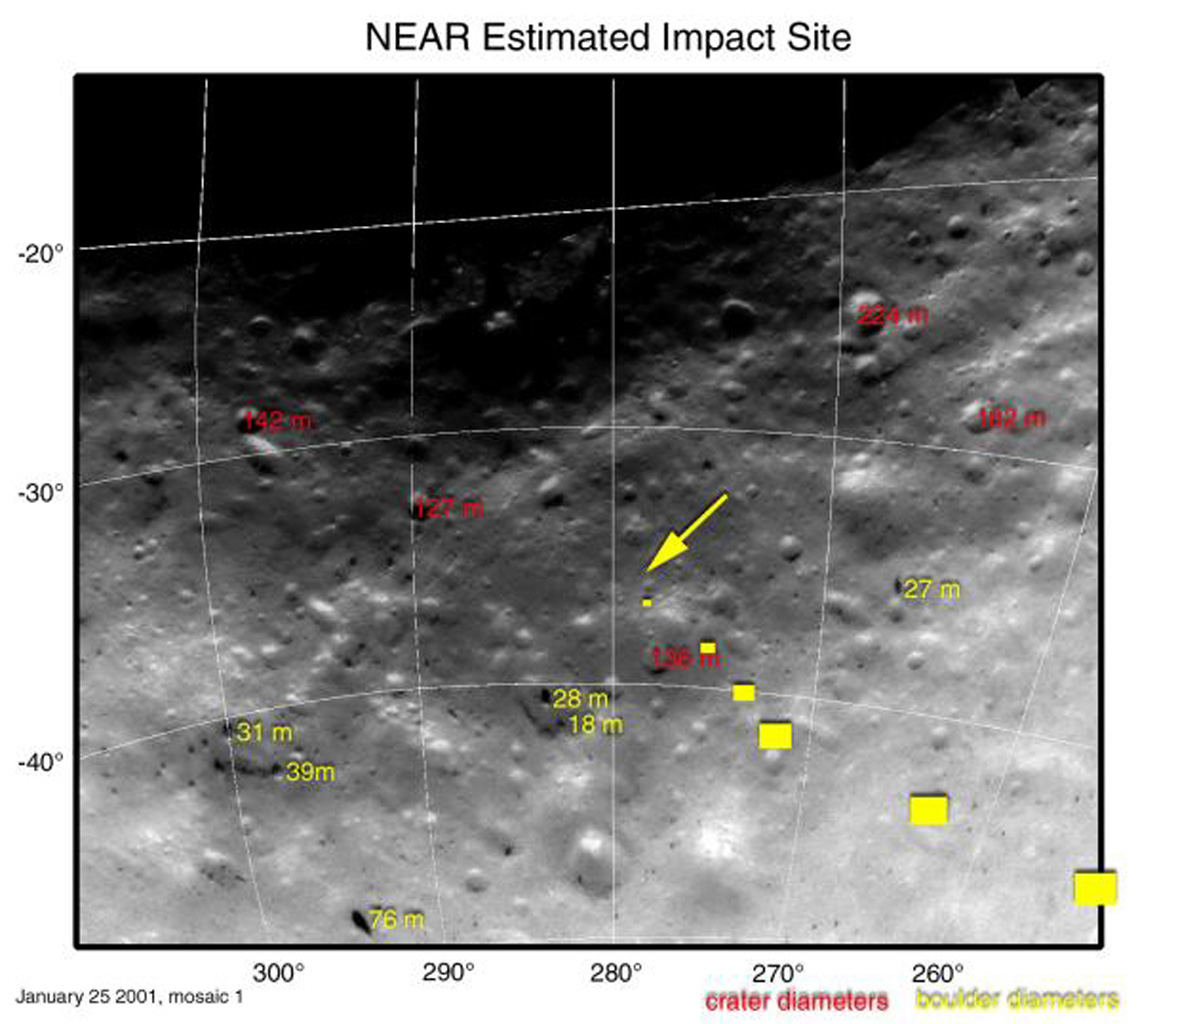 This mosaic made from images taken Jan. 25, 2001 by NASA's NEAR Shoemaker shows diameters of craters in red, and diameters of boulders are shown in yellow. A yellow arrow marks the estimated touchdown site.